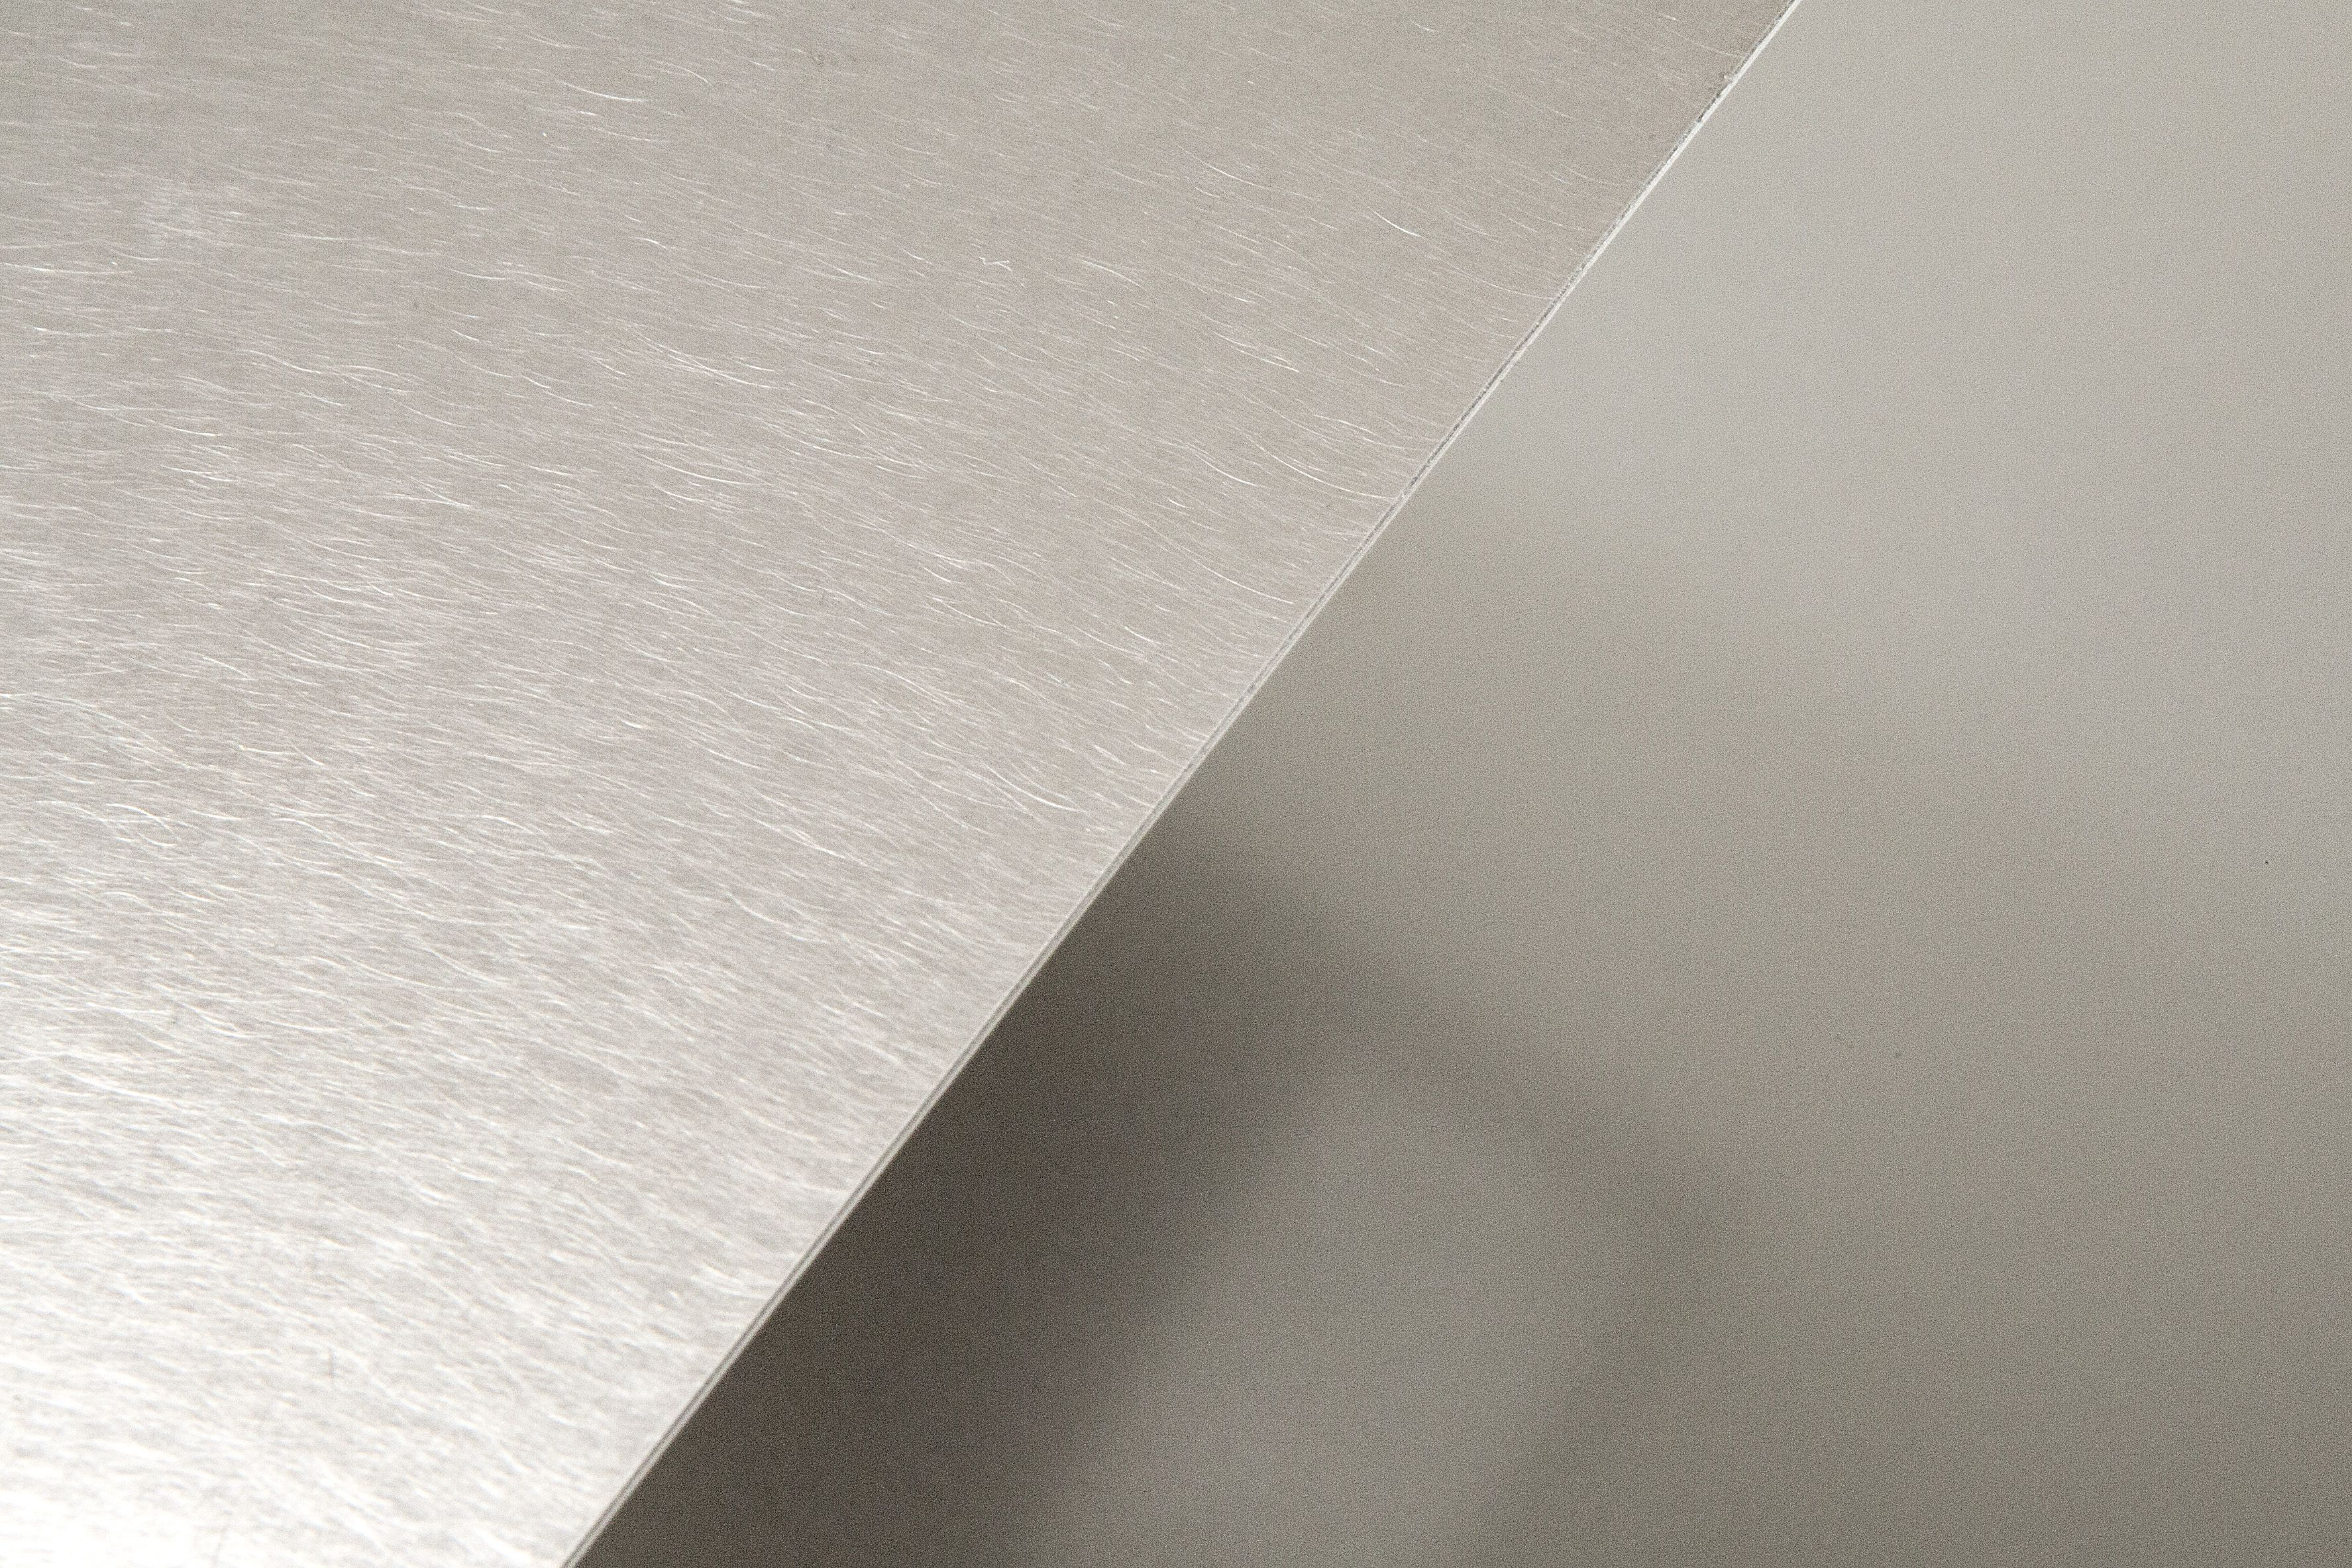 Polished And Bead Blasted Finishes Materialdistrict Stainless Steel Sheet It Is Finished Steel Sheet